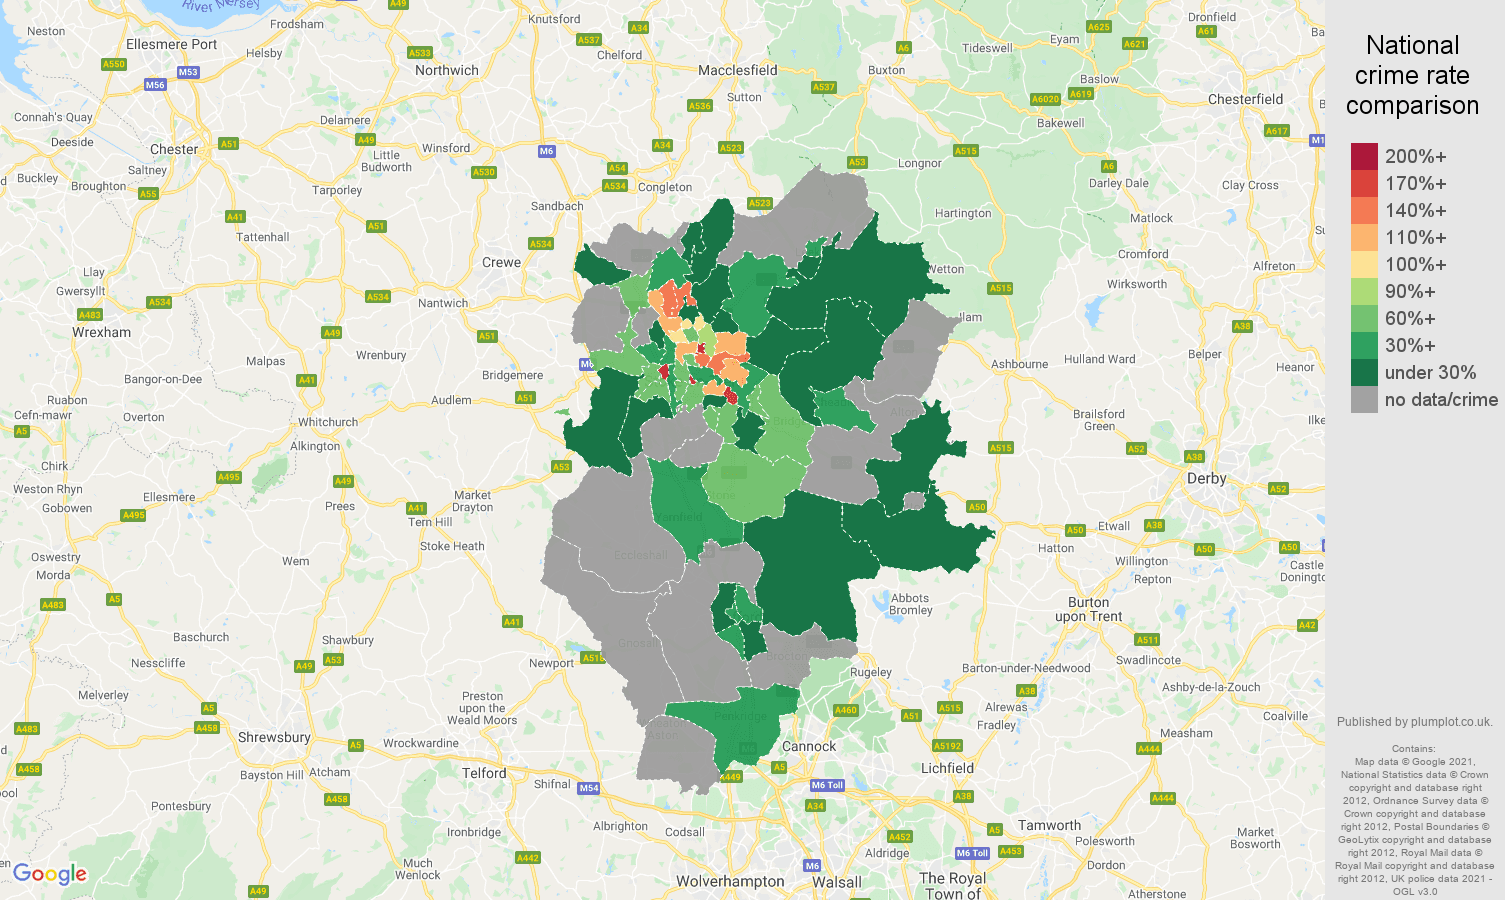 Stoke on Trent robbery crime rate comparison map